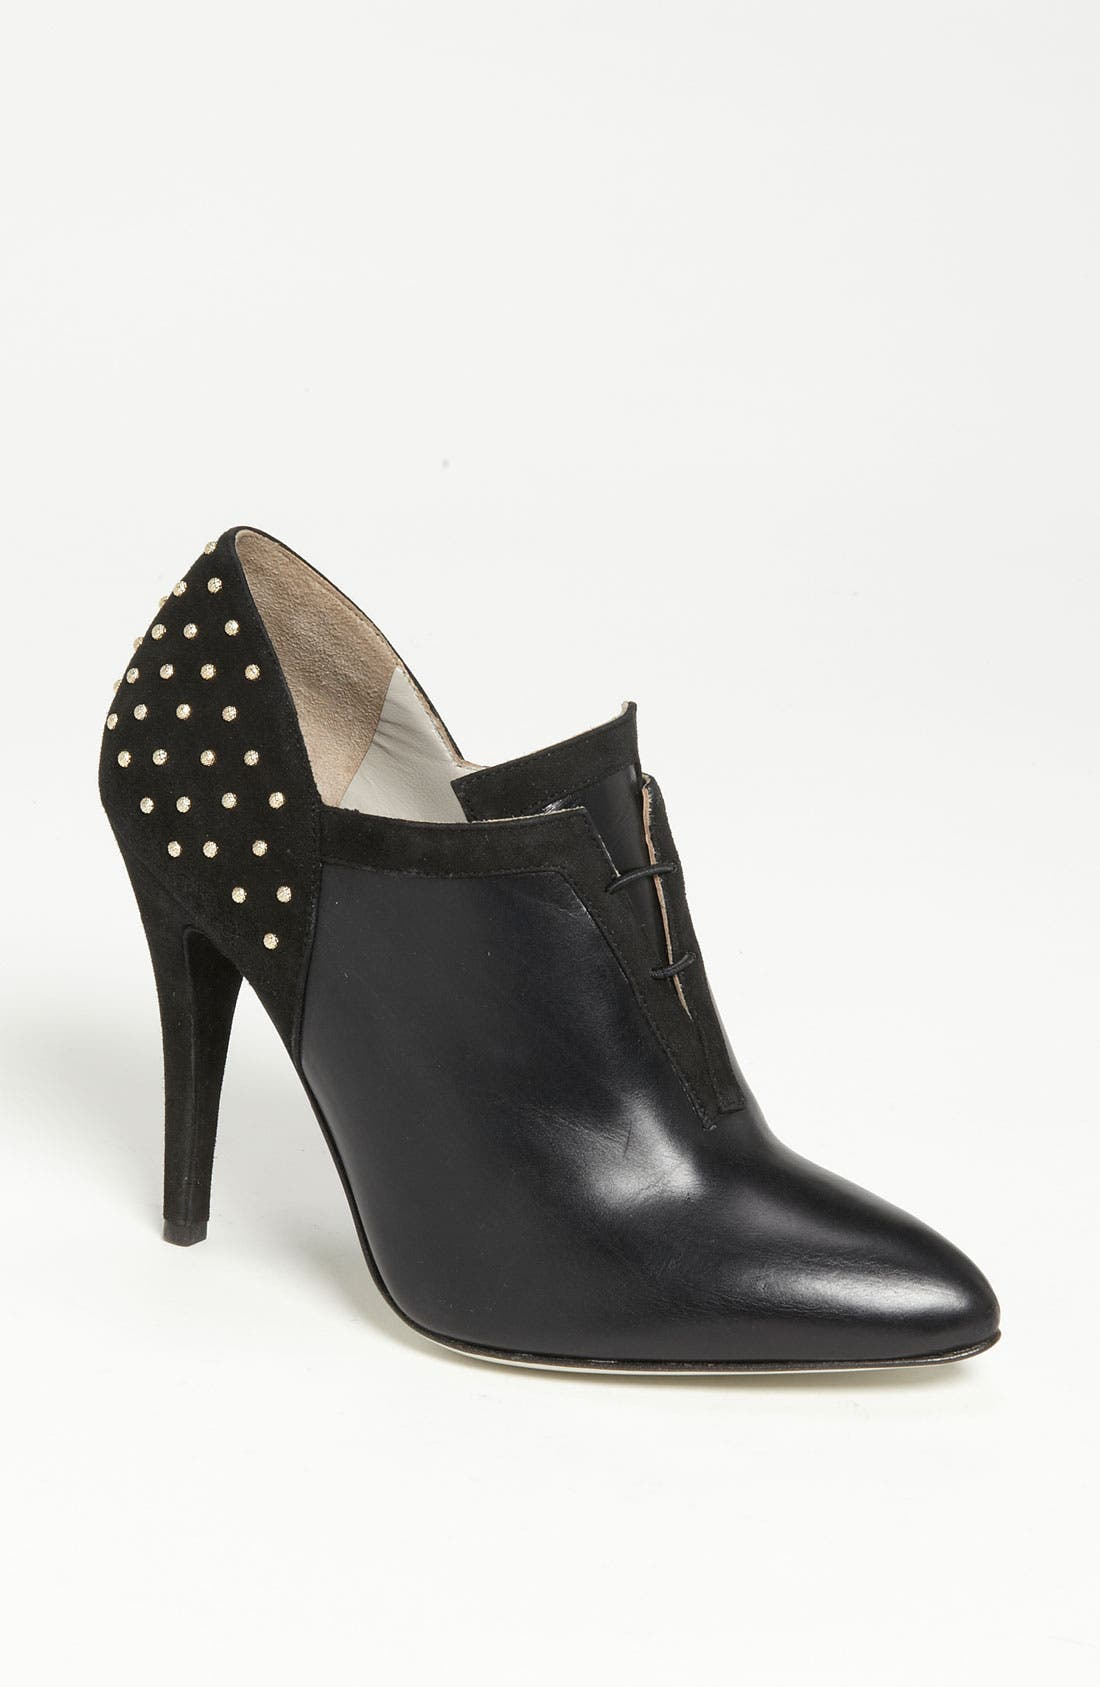 Alternate Image 1 Selected - Jason Wu Studded Bootie